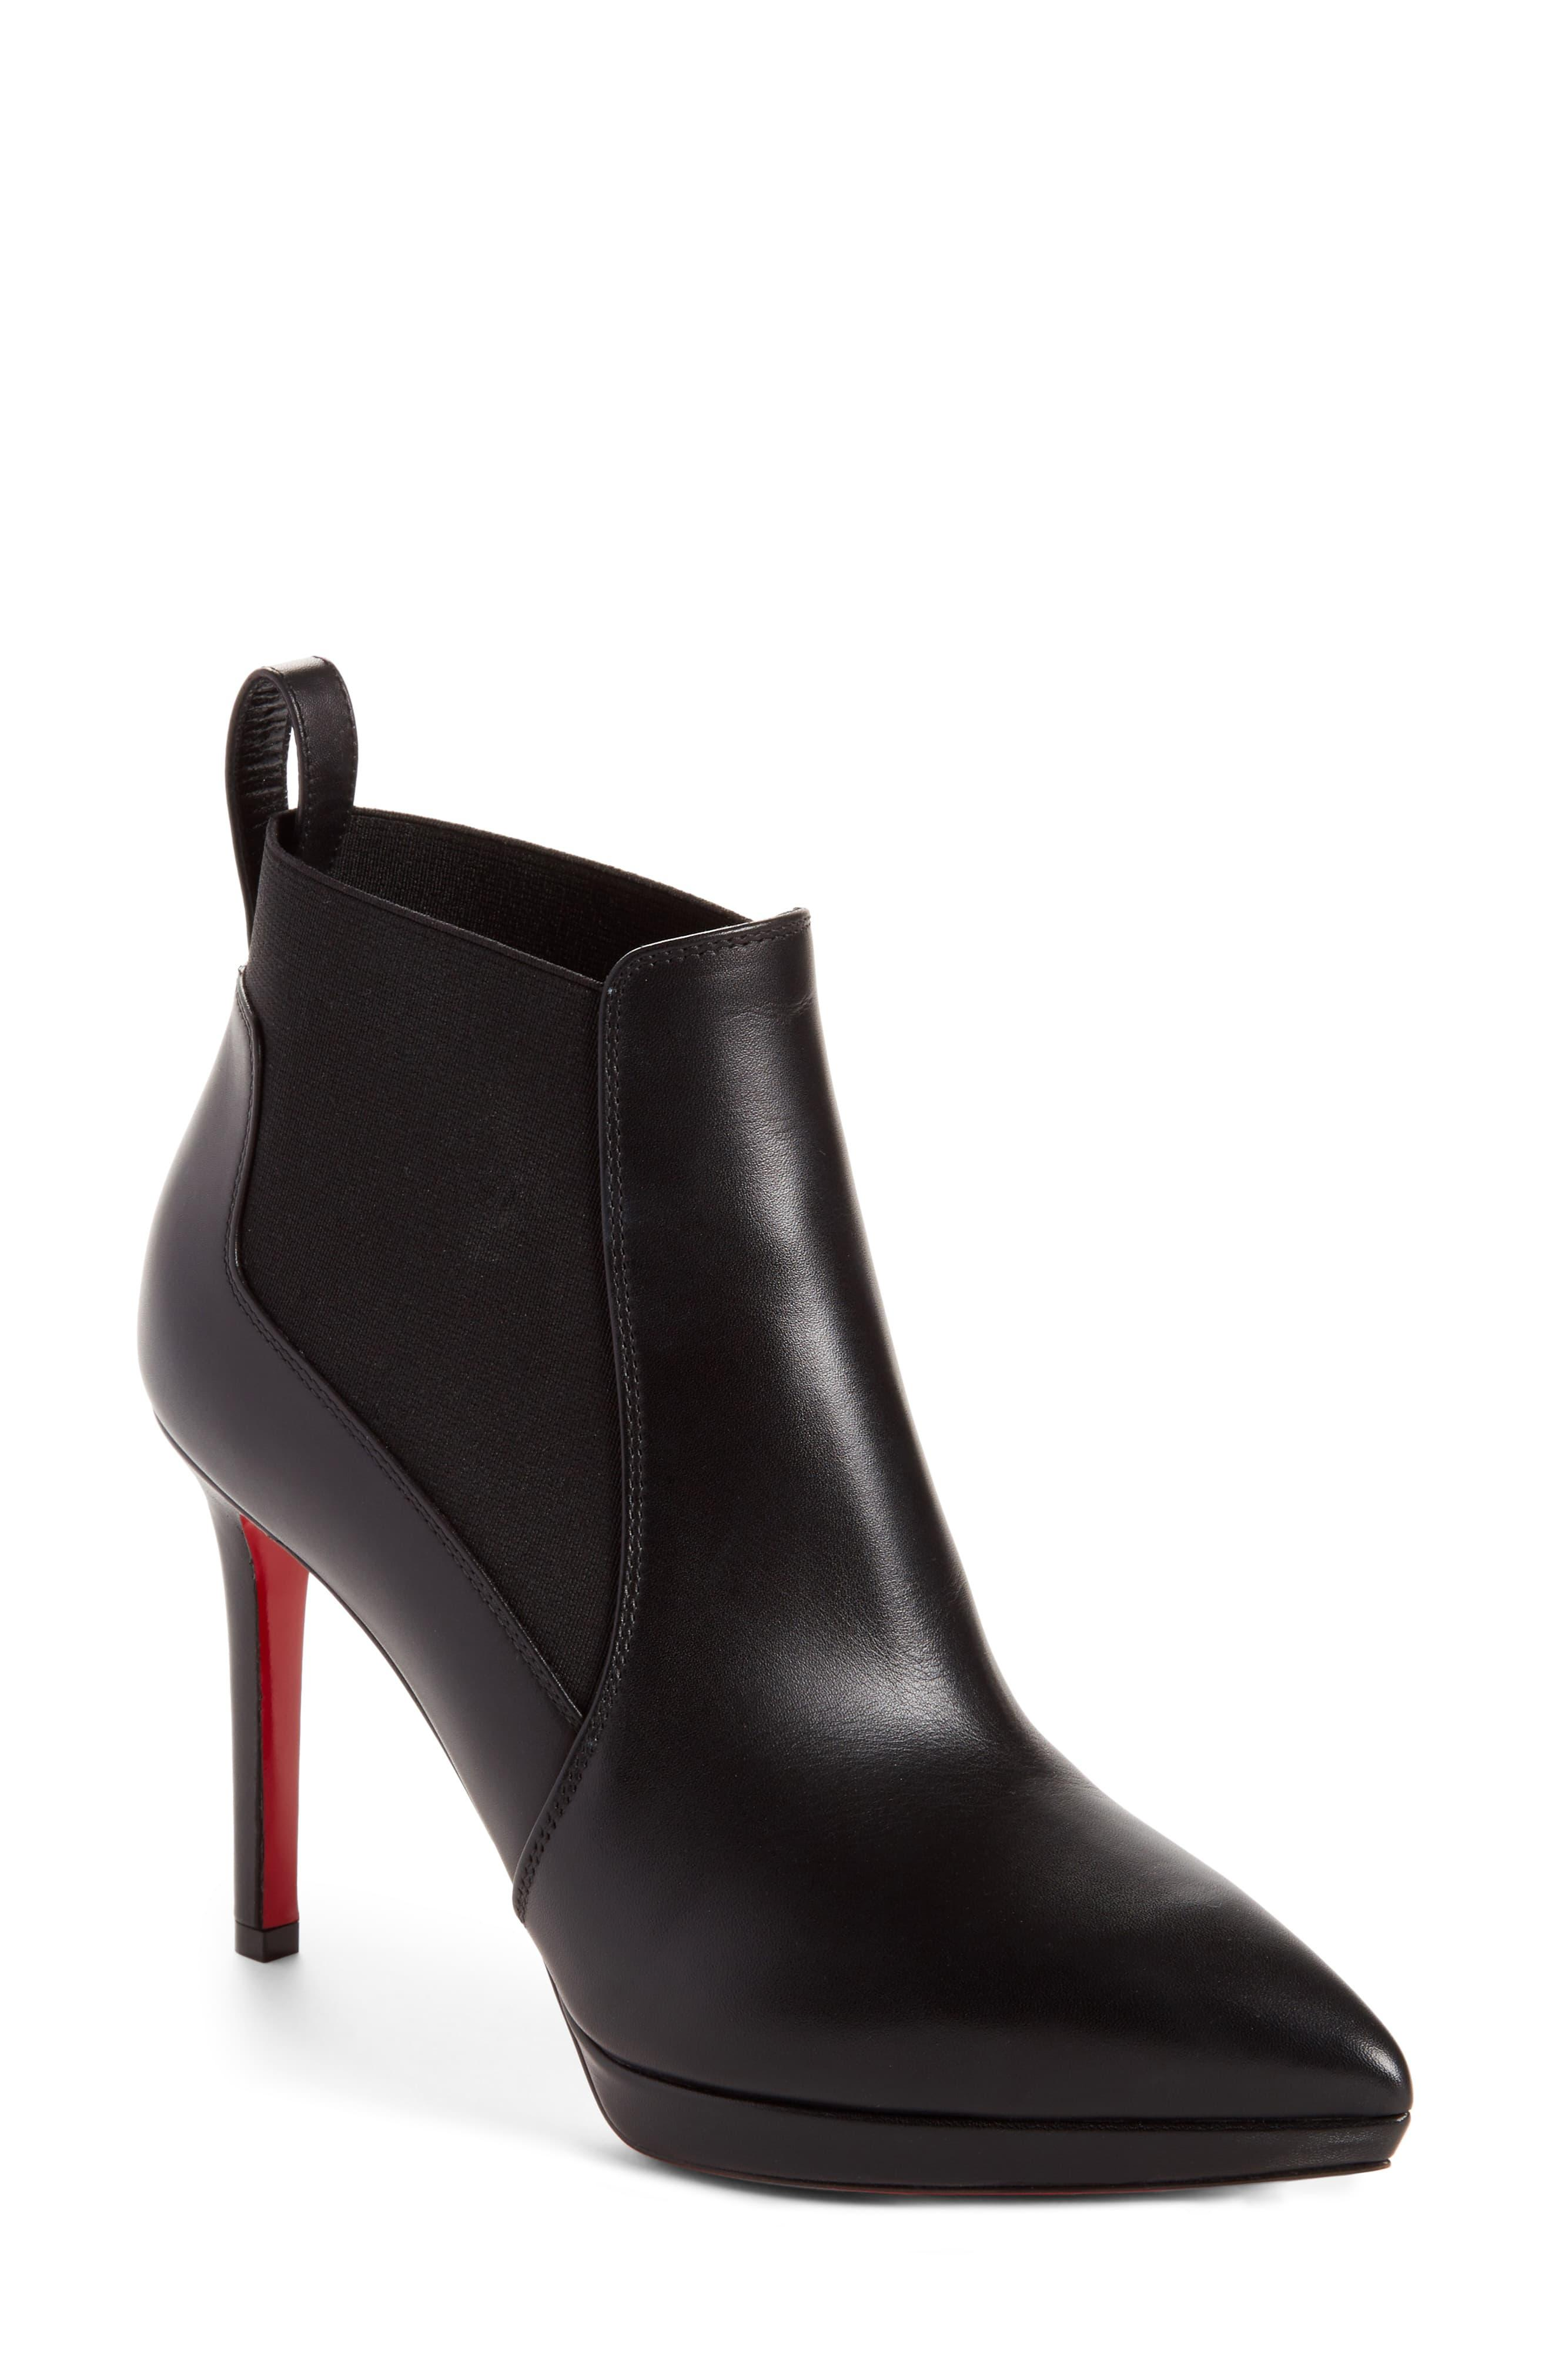 speical offer temperament shoes 2018 sneakers Christian Louboutin Leather Crochinetta in Black - Lyst